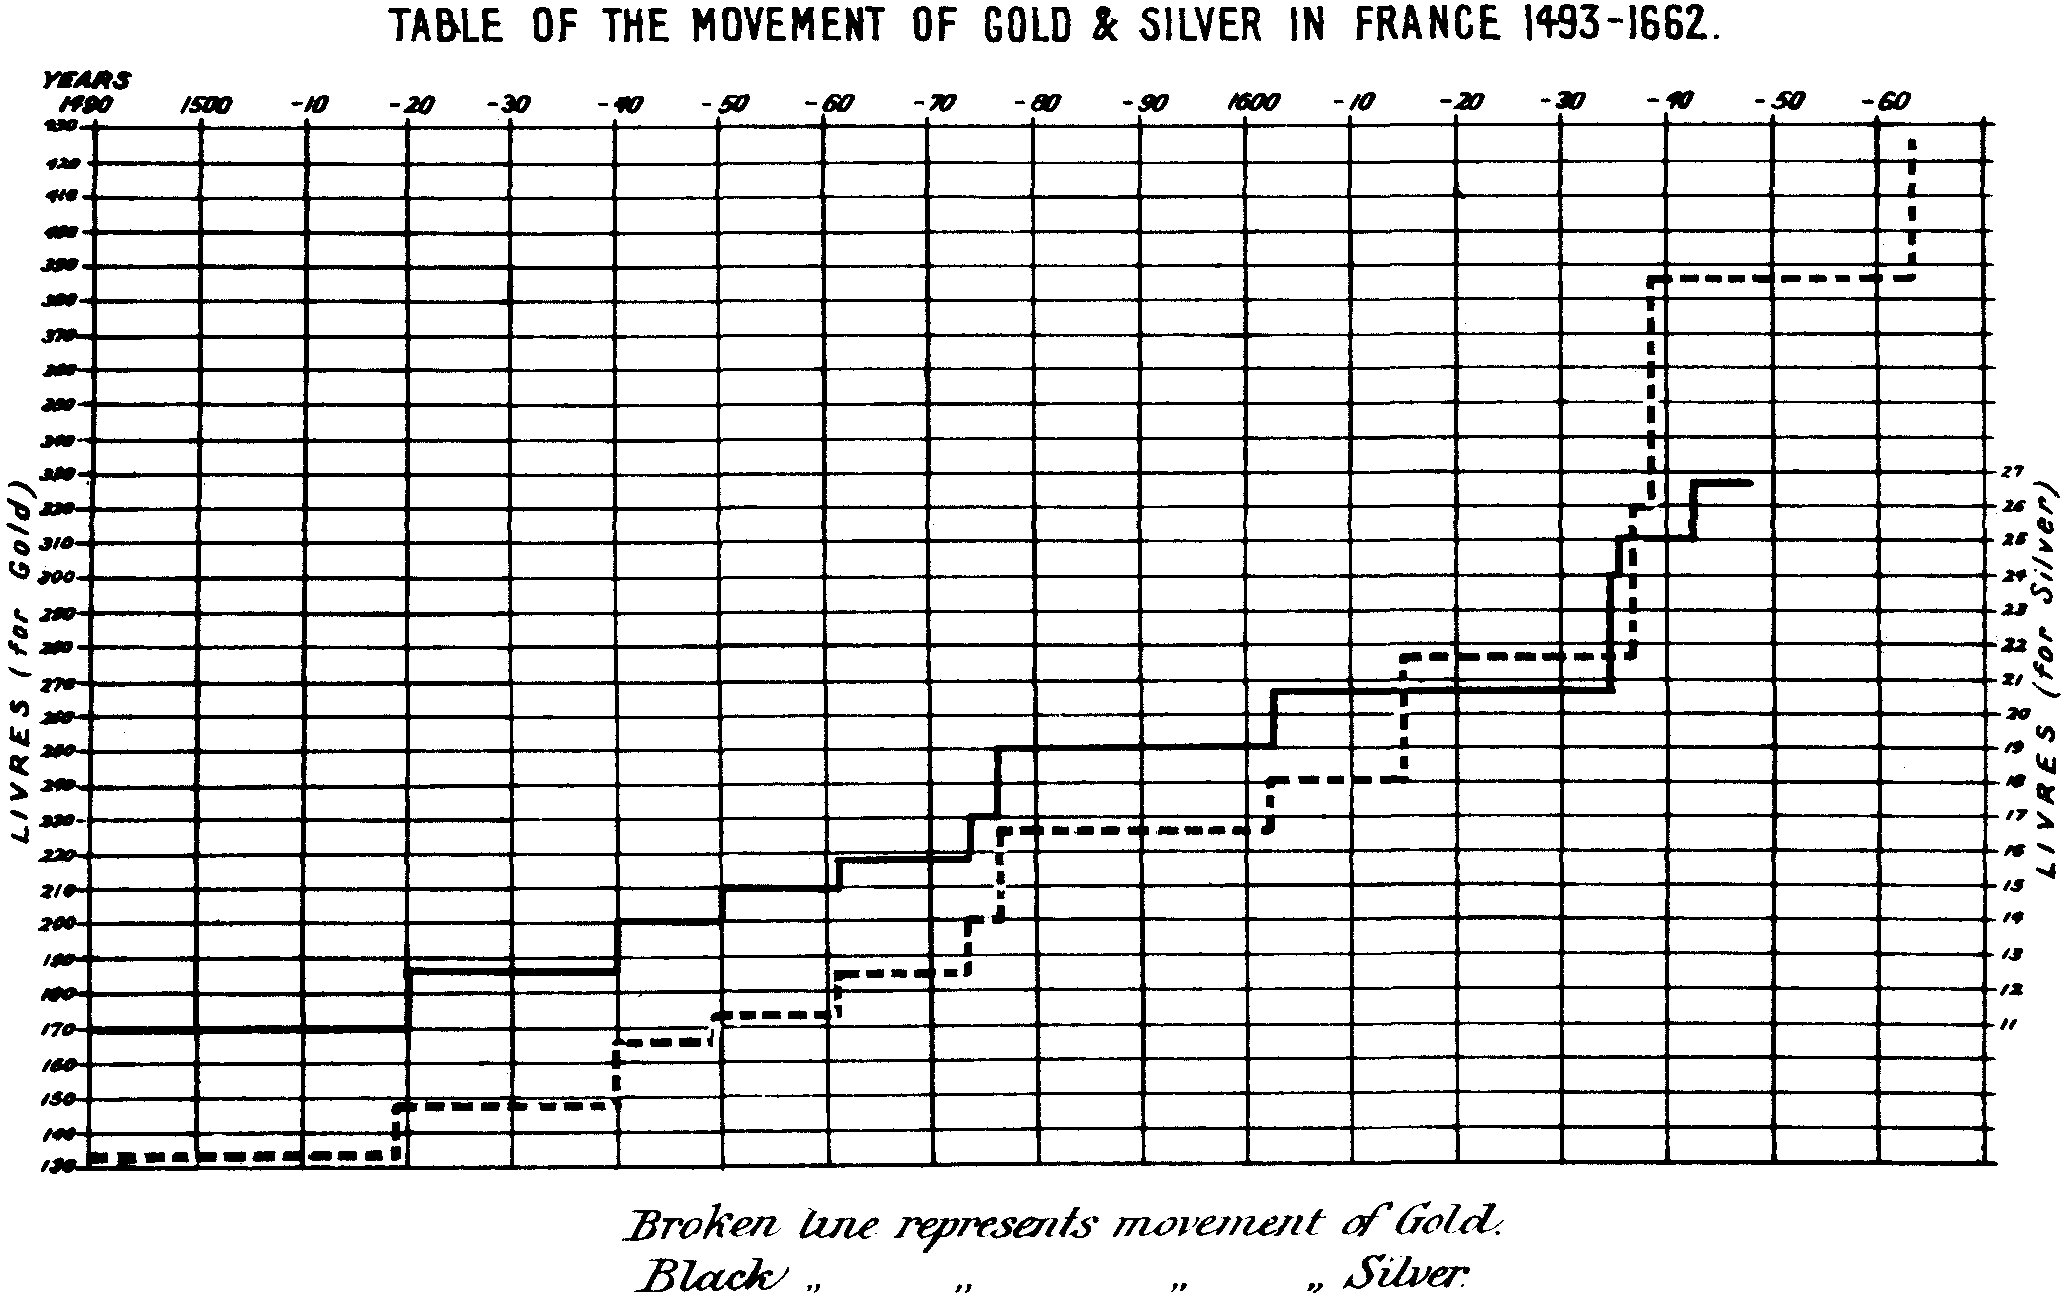 The project gutenberg ebook of the history of currency by wa shaw fandeluxe Images